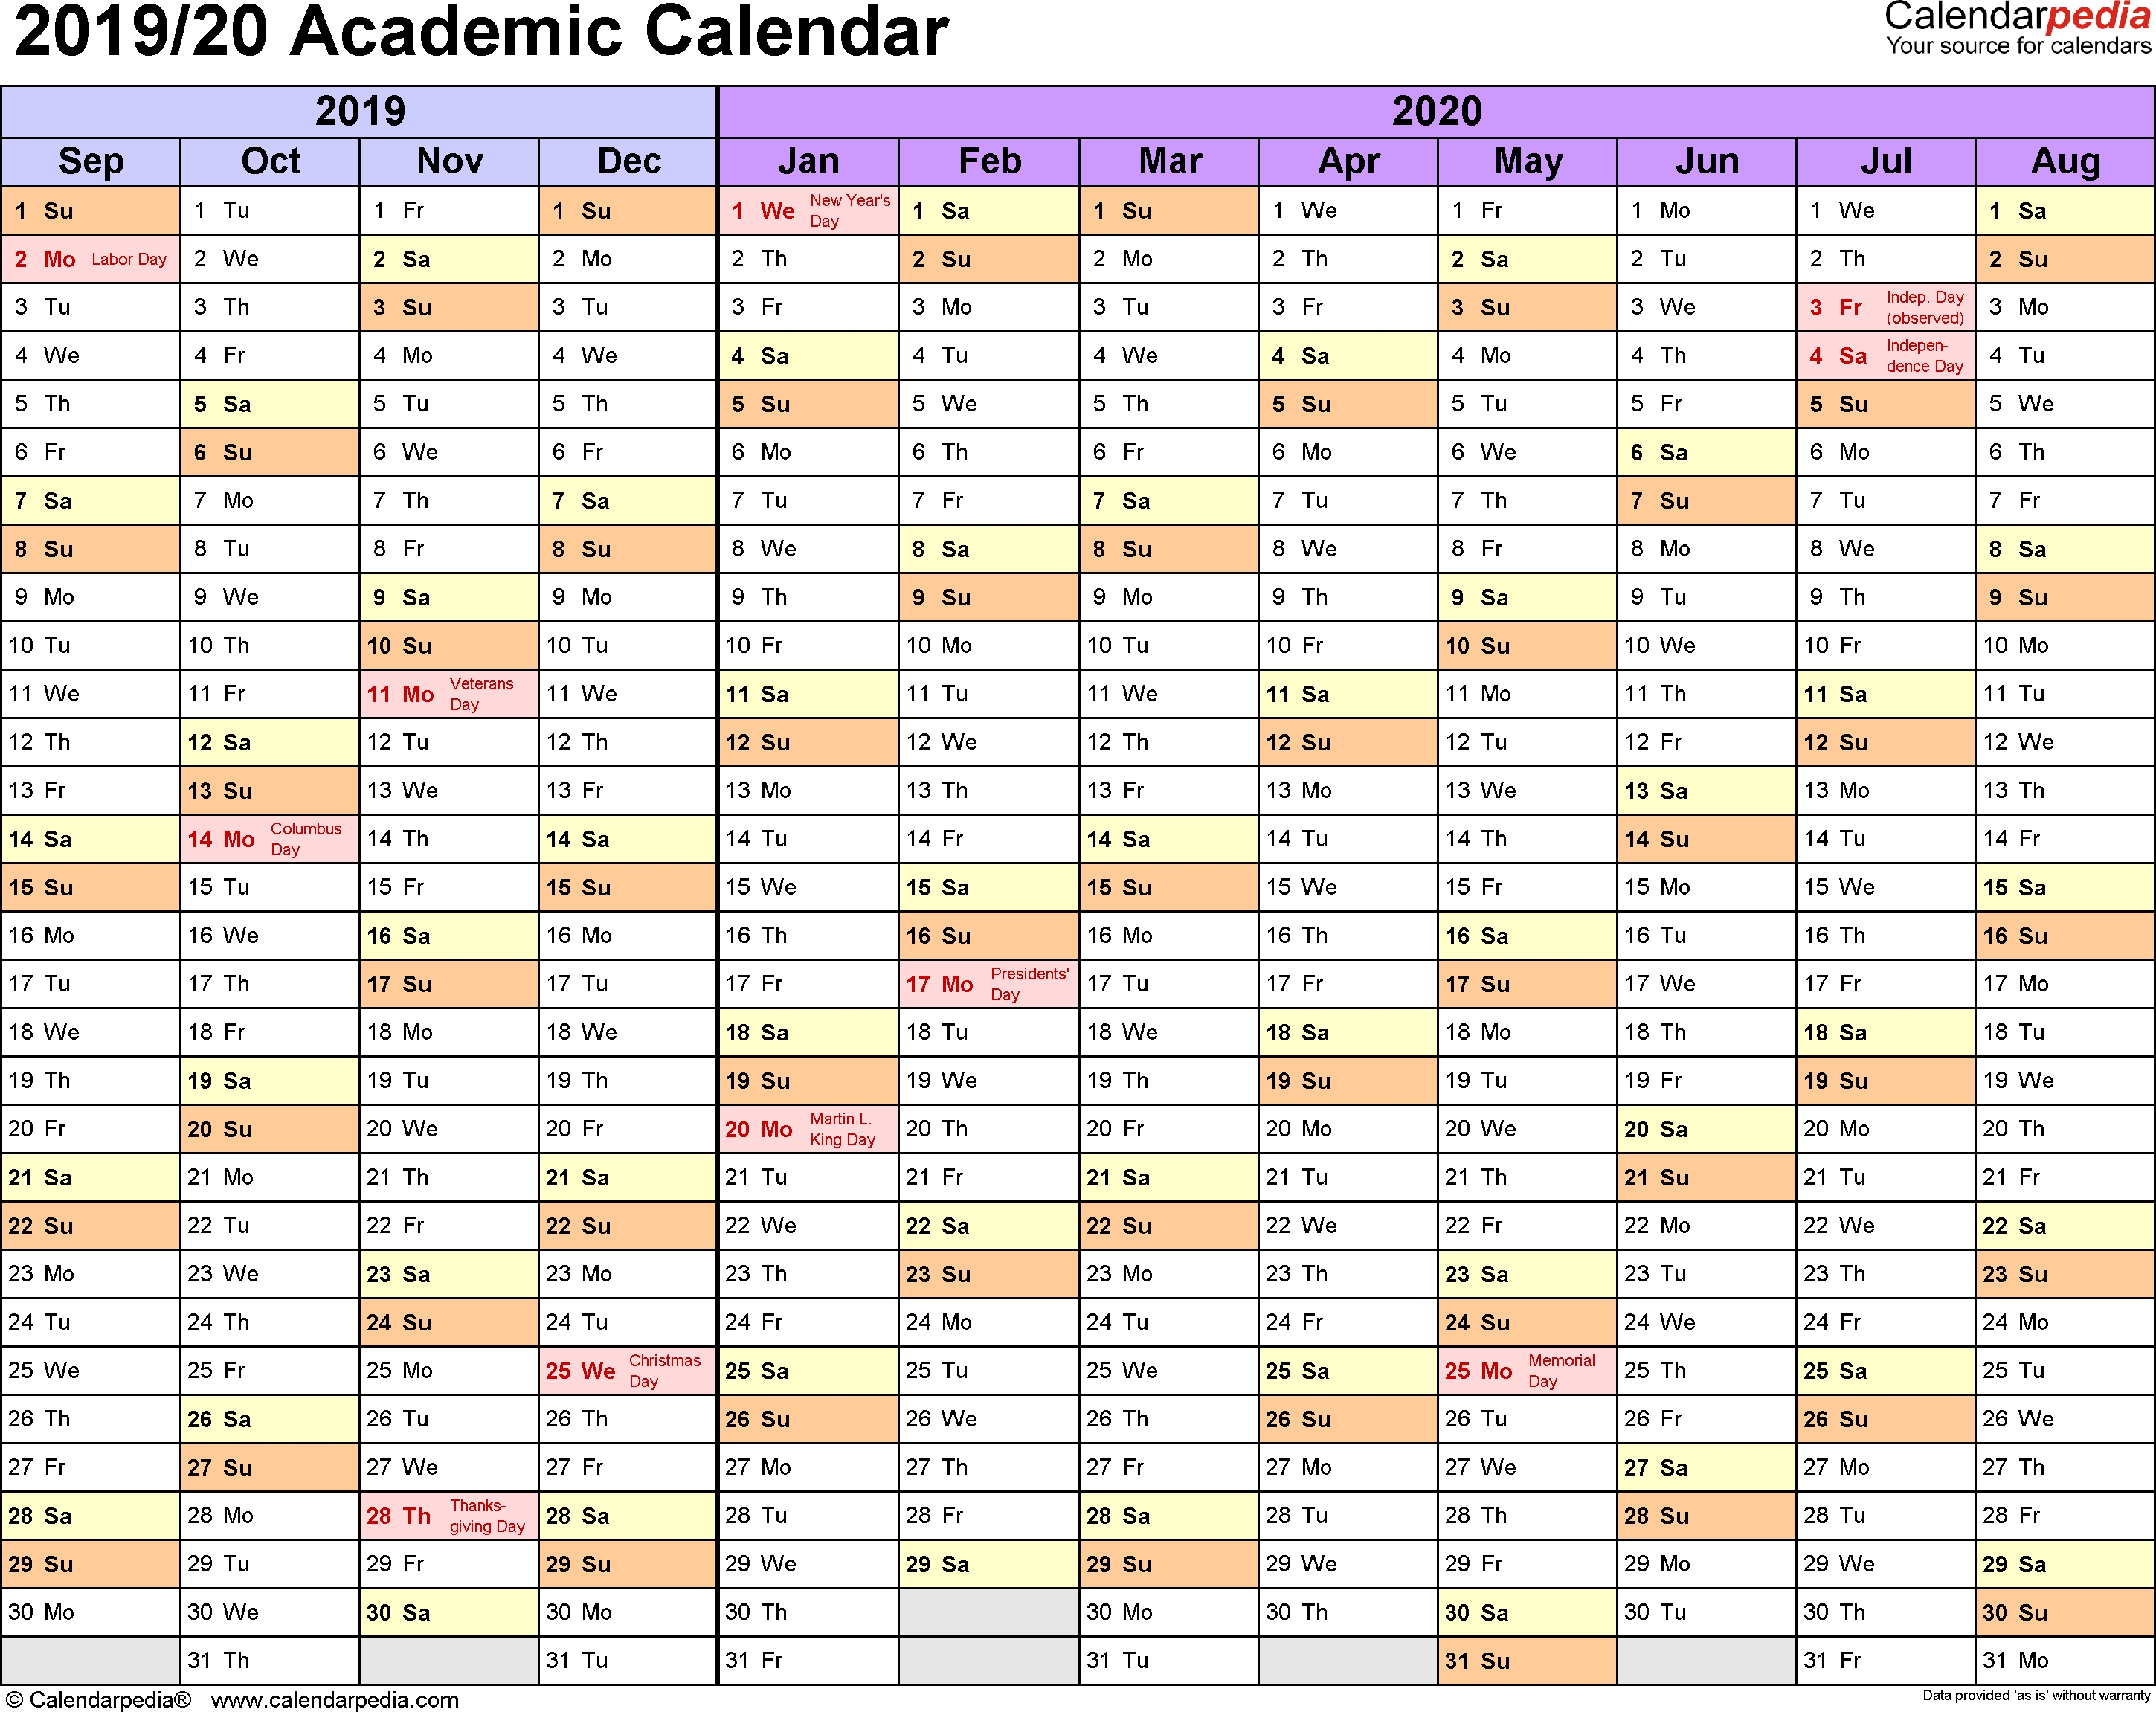 Academic Calendars 2019/2020 - Free Printable Excel Templates-2020 Calendar South Africa With Public Holidays And School Terms